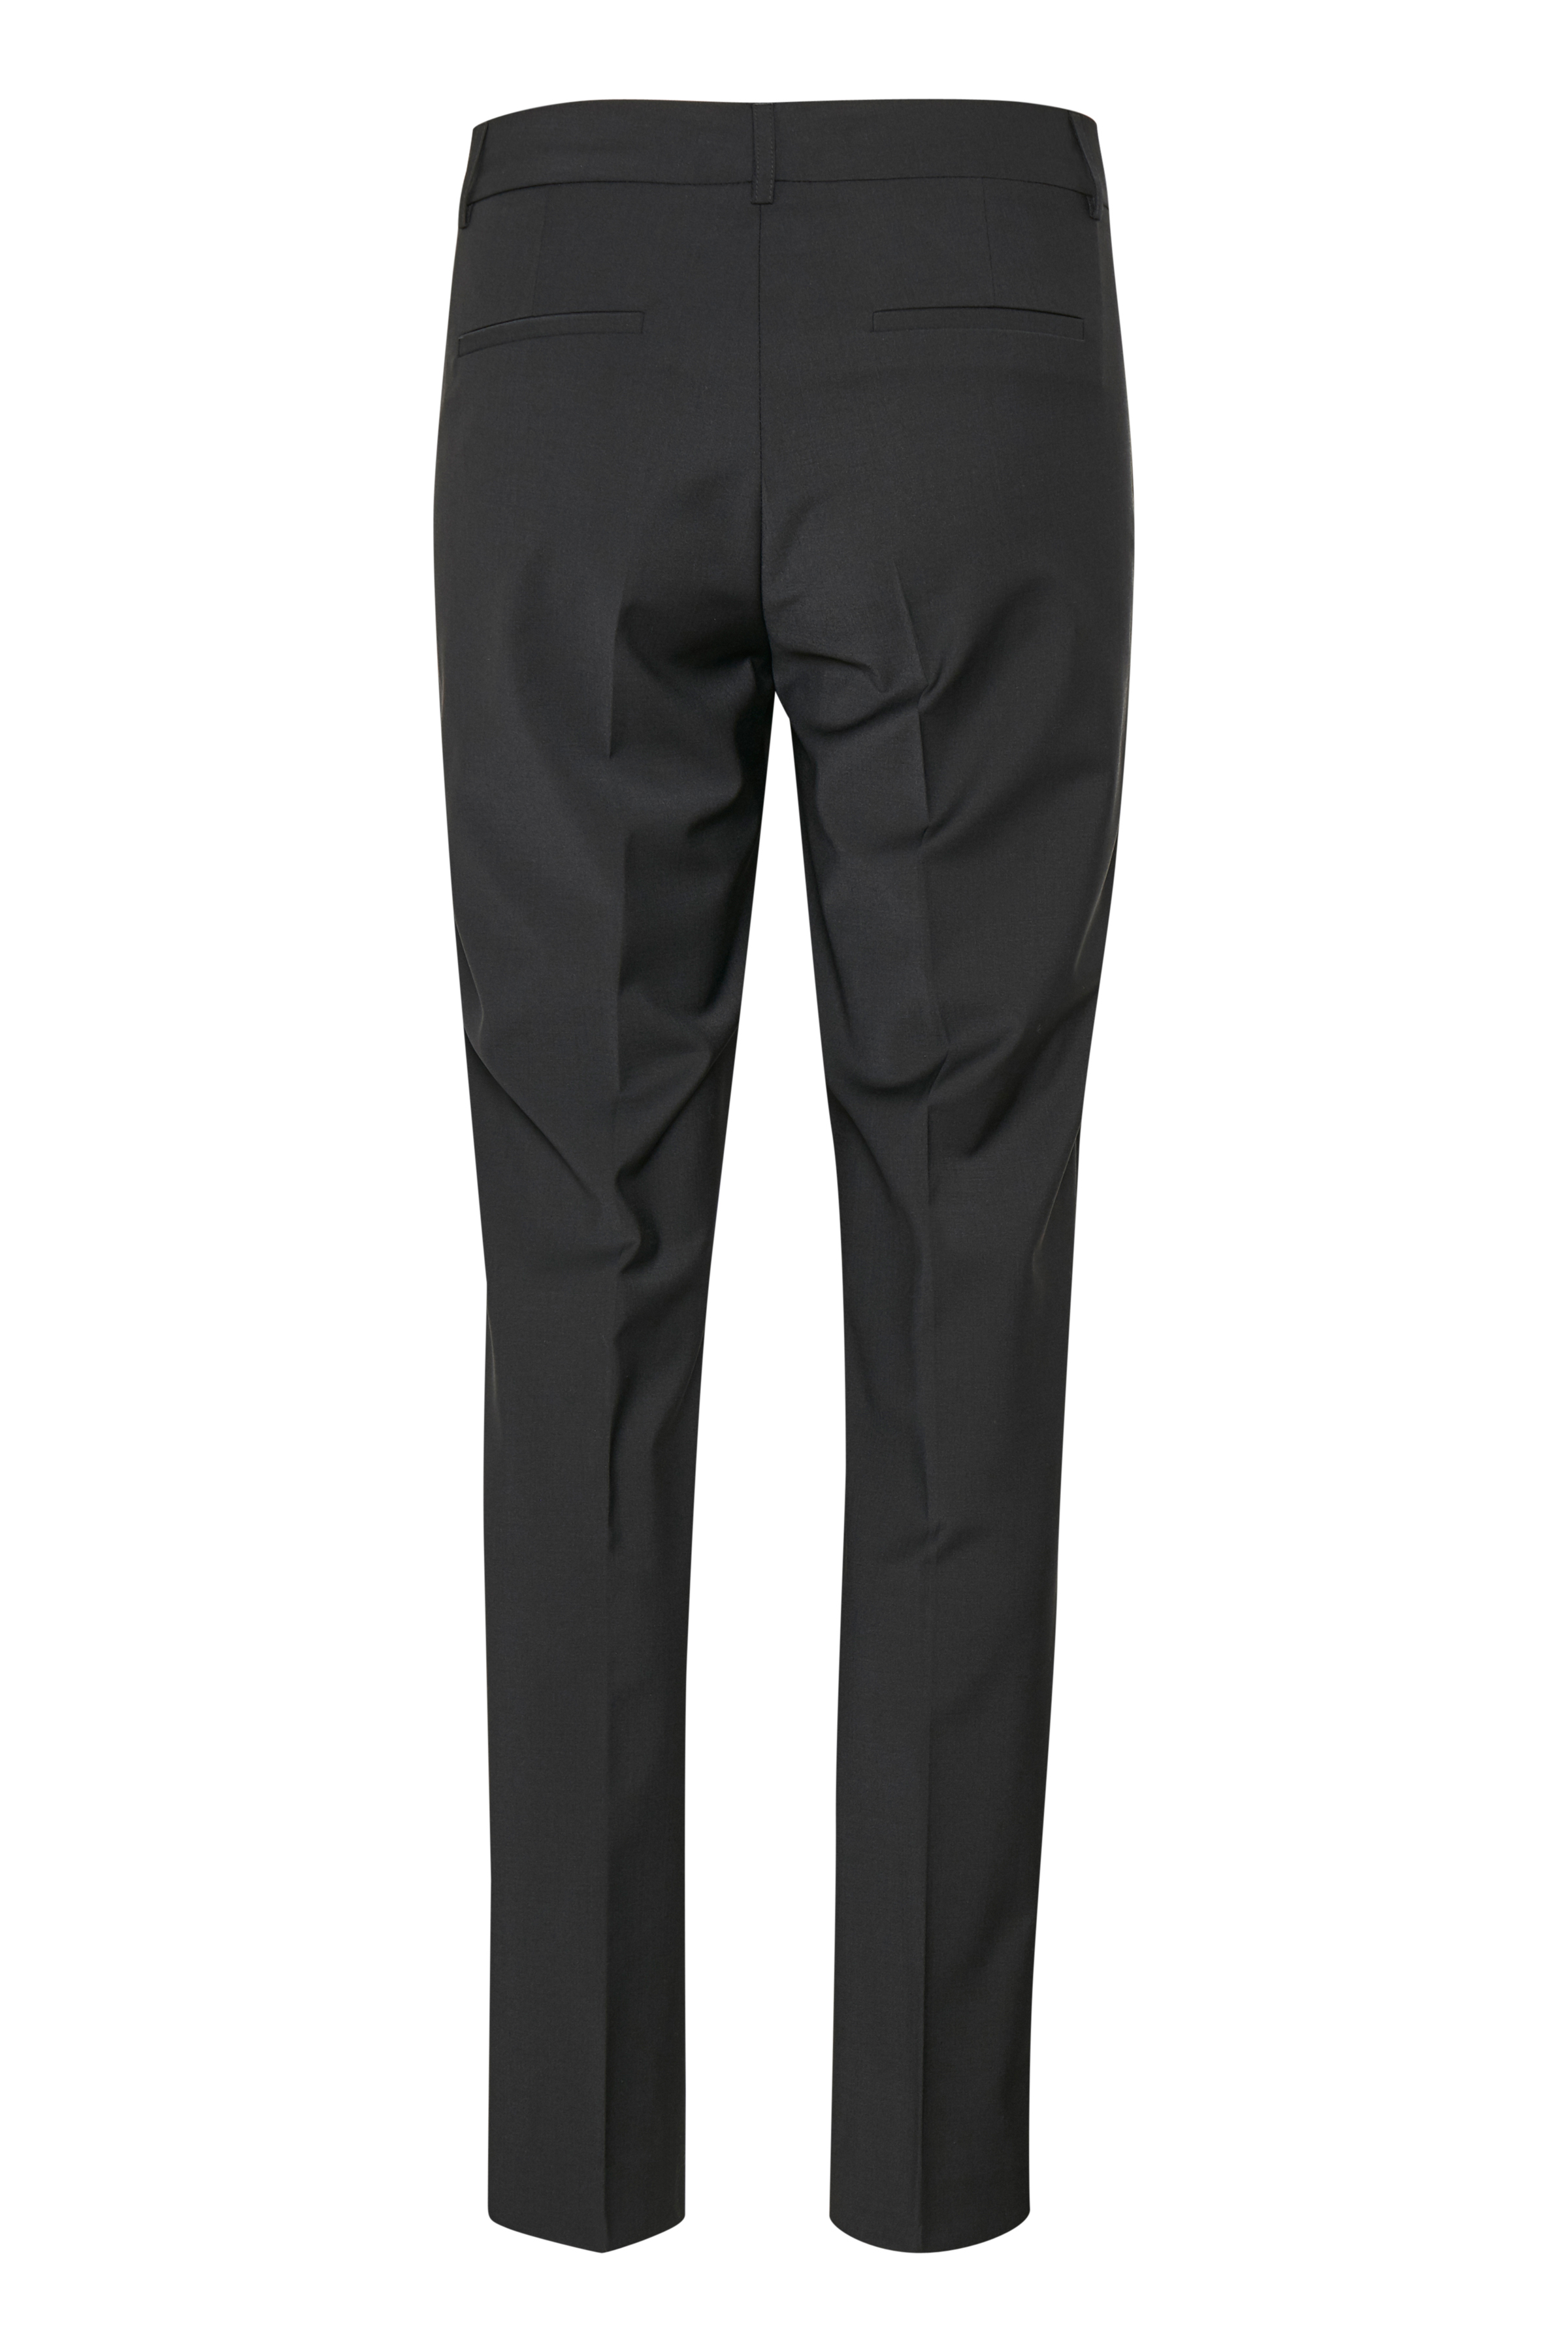 Black Pants Suiting – Køb Black Pants Suiting fra str. 36-44 her